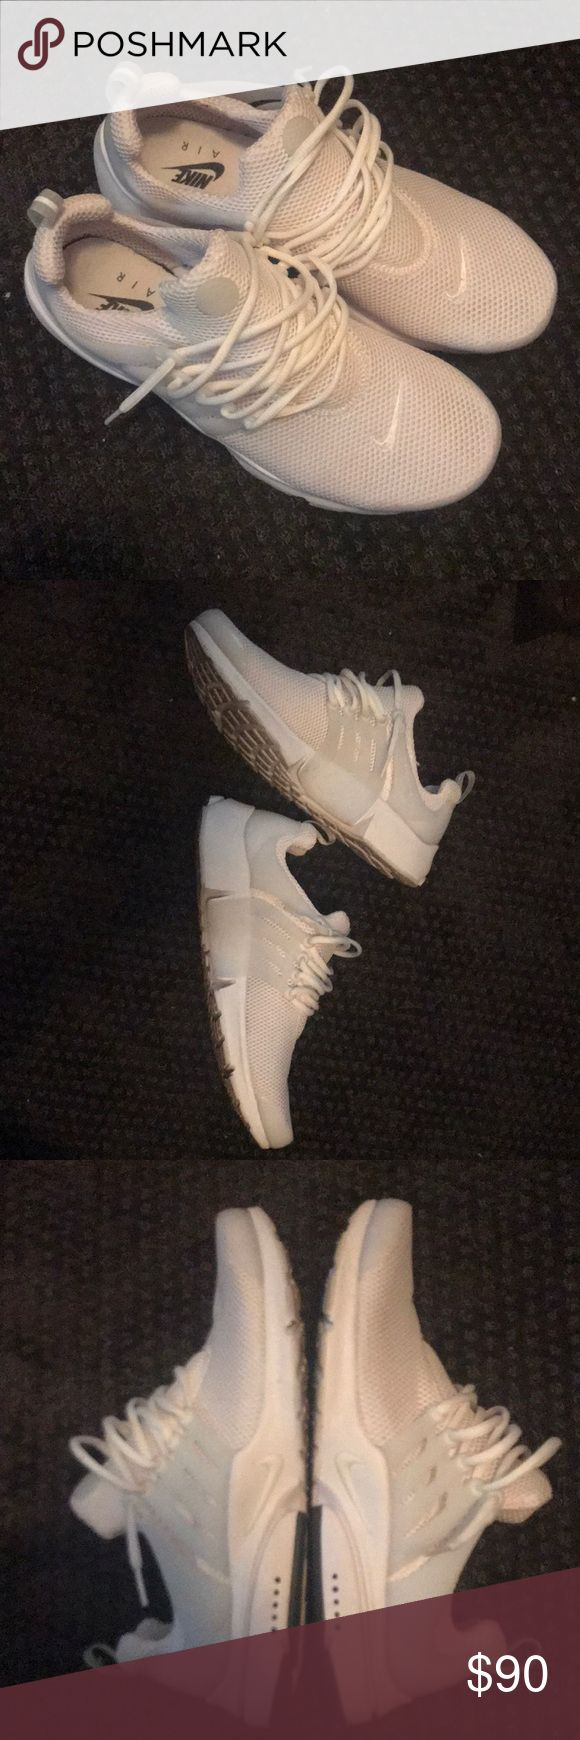 Nike Air Prestos All White Like new worn a few times Nike Shoes Sneakers